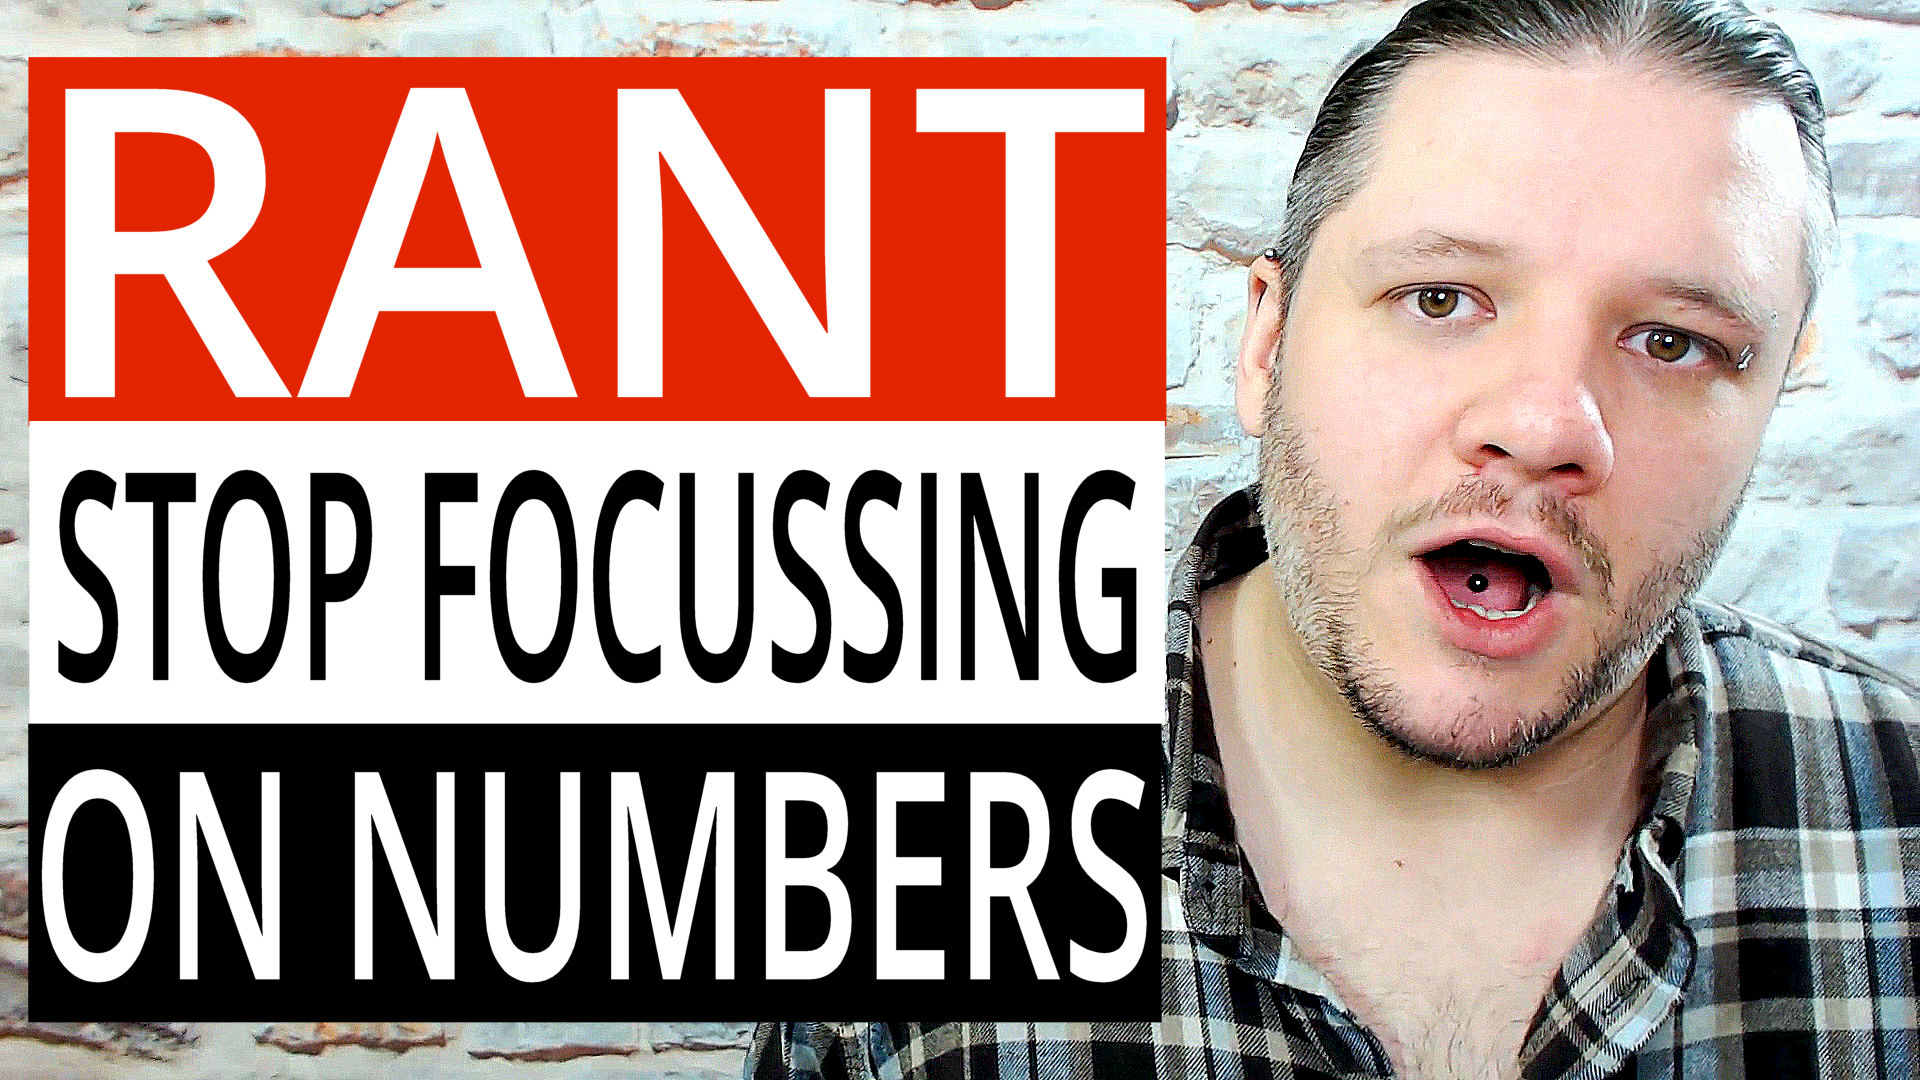 alan spicer,alanspicer,youtube tips,asyt,youtube tips 2018,growing a youtube channel,how to grow your youtube channel,how to grow on youtube,stop focussing on the numbers,rant,how to grow on youtube rant,how to grow your youtube channel fast,grow your youtube channel,grow your youtube channel 2018,how to grow your youtube channel 2018,how to grow on youtube 2018,youtube rant,youtube motivation for small youtubers,youtube motivational speech,youtube motivation